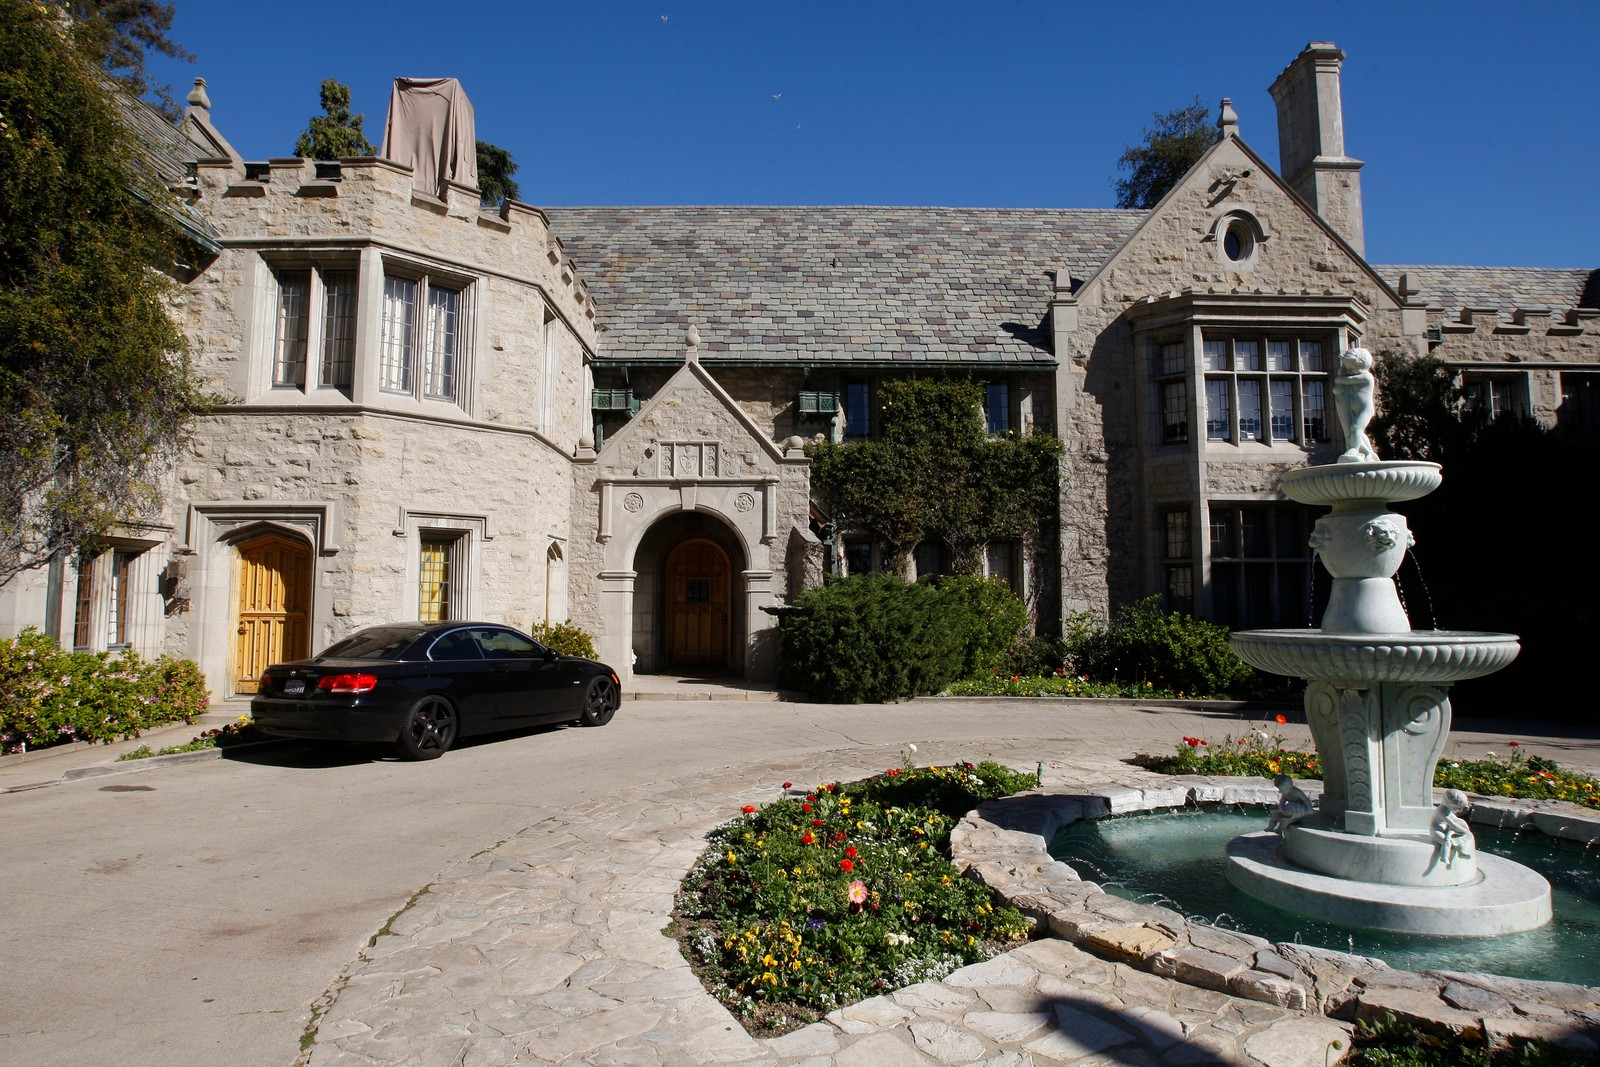 USA-PLAYBOY-MANSION A view of the Playboy Mansion in Los Angeles, California, U.S. February 10, 2011. REUTERS/Fred Prouser/File Photo A view of the Playboy Mansion in Los Angeles, California